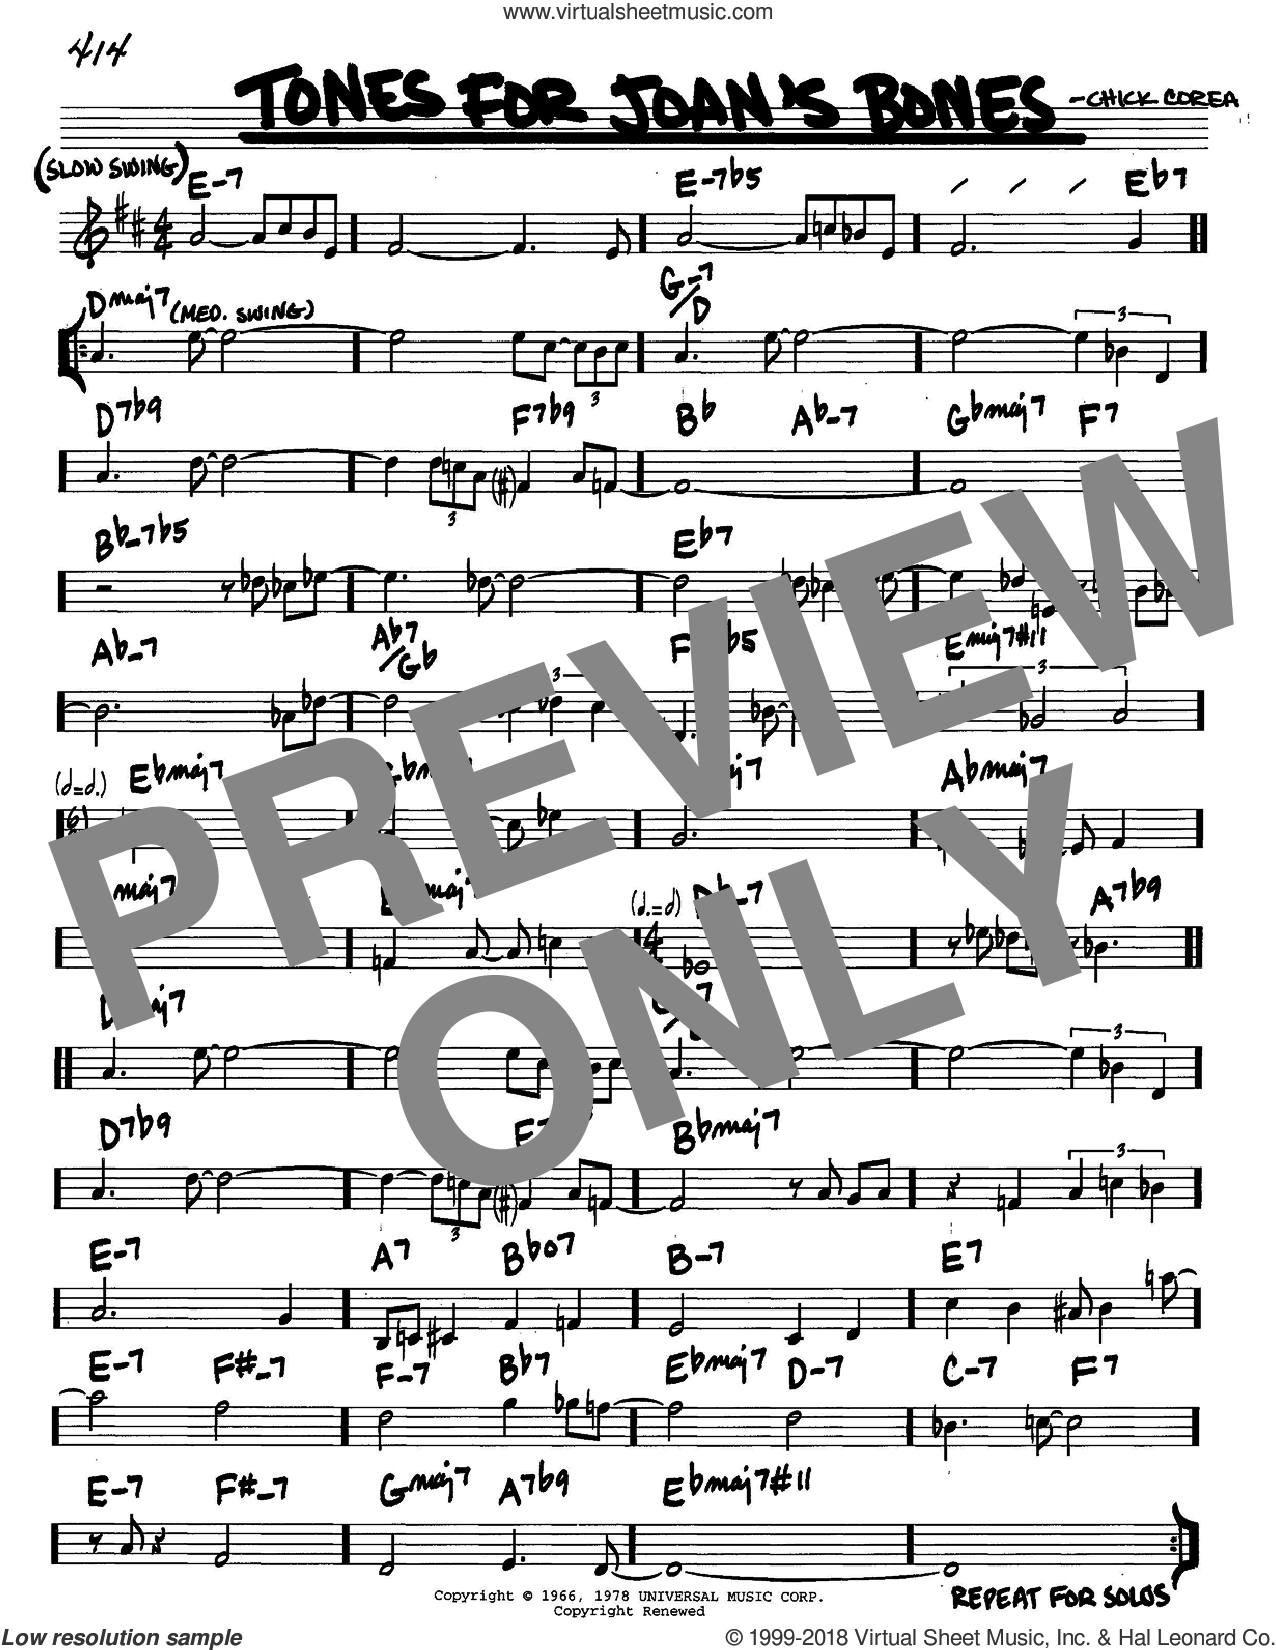 Tones For Joan's Bones sheet music for voice and other instruments (C) by Chick Corea. Score Image Preview.